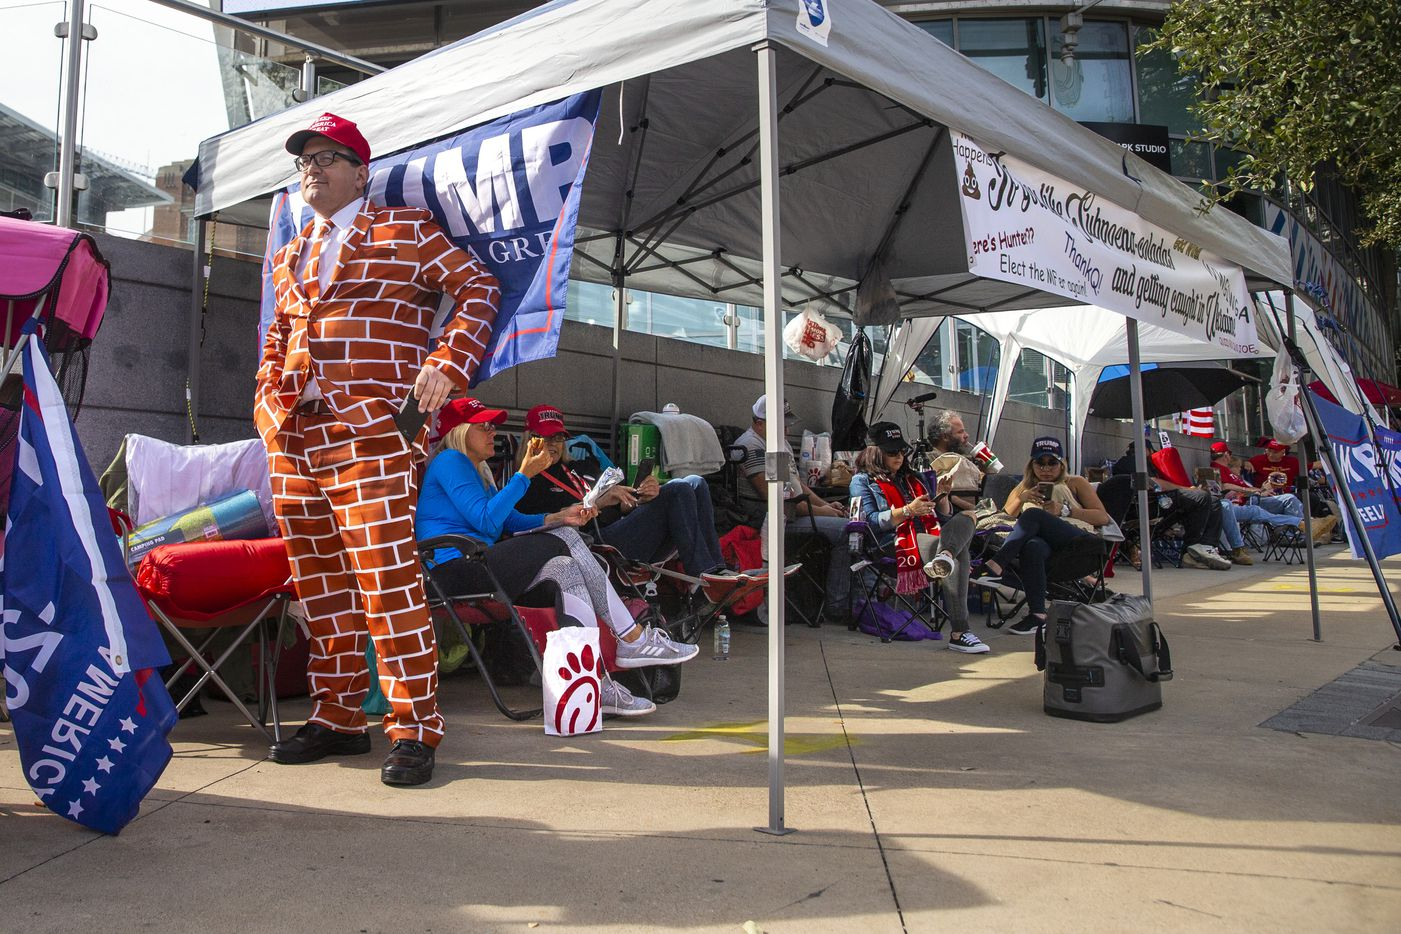 Blake Marnell wears a brick suit while camping out in line in front of the American Airlines Center in Dallas on Wednesday, Oct. 16, 2019. President Donald Trump will host a rally at the center on Thursday evening.